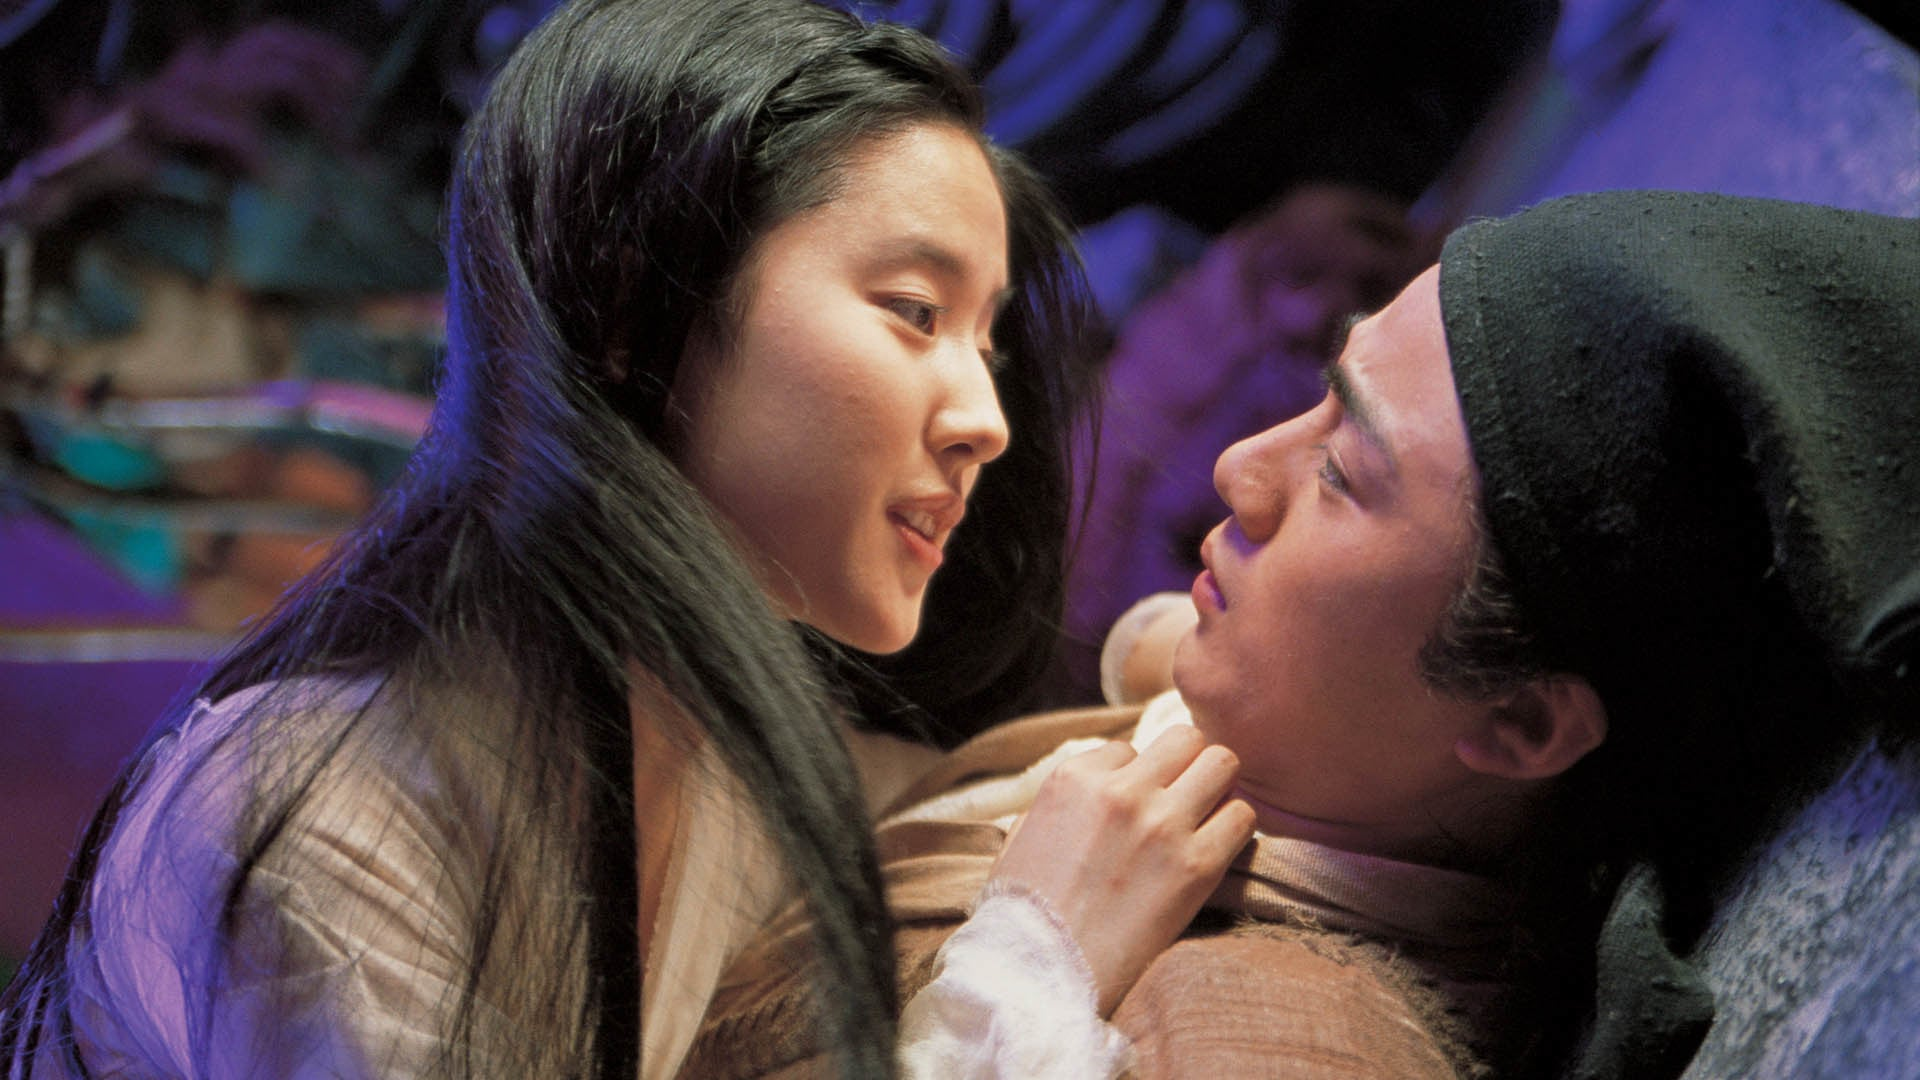 Yu Siu Kwan and Liu Yi Fei in A Chinese Ghost Story (2011)